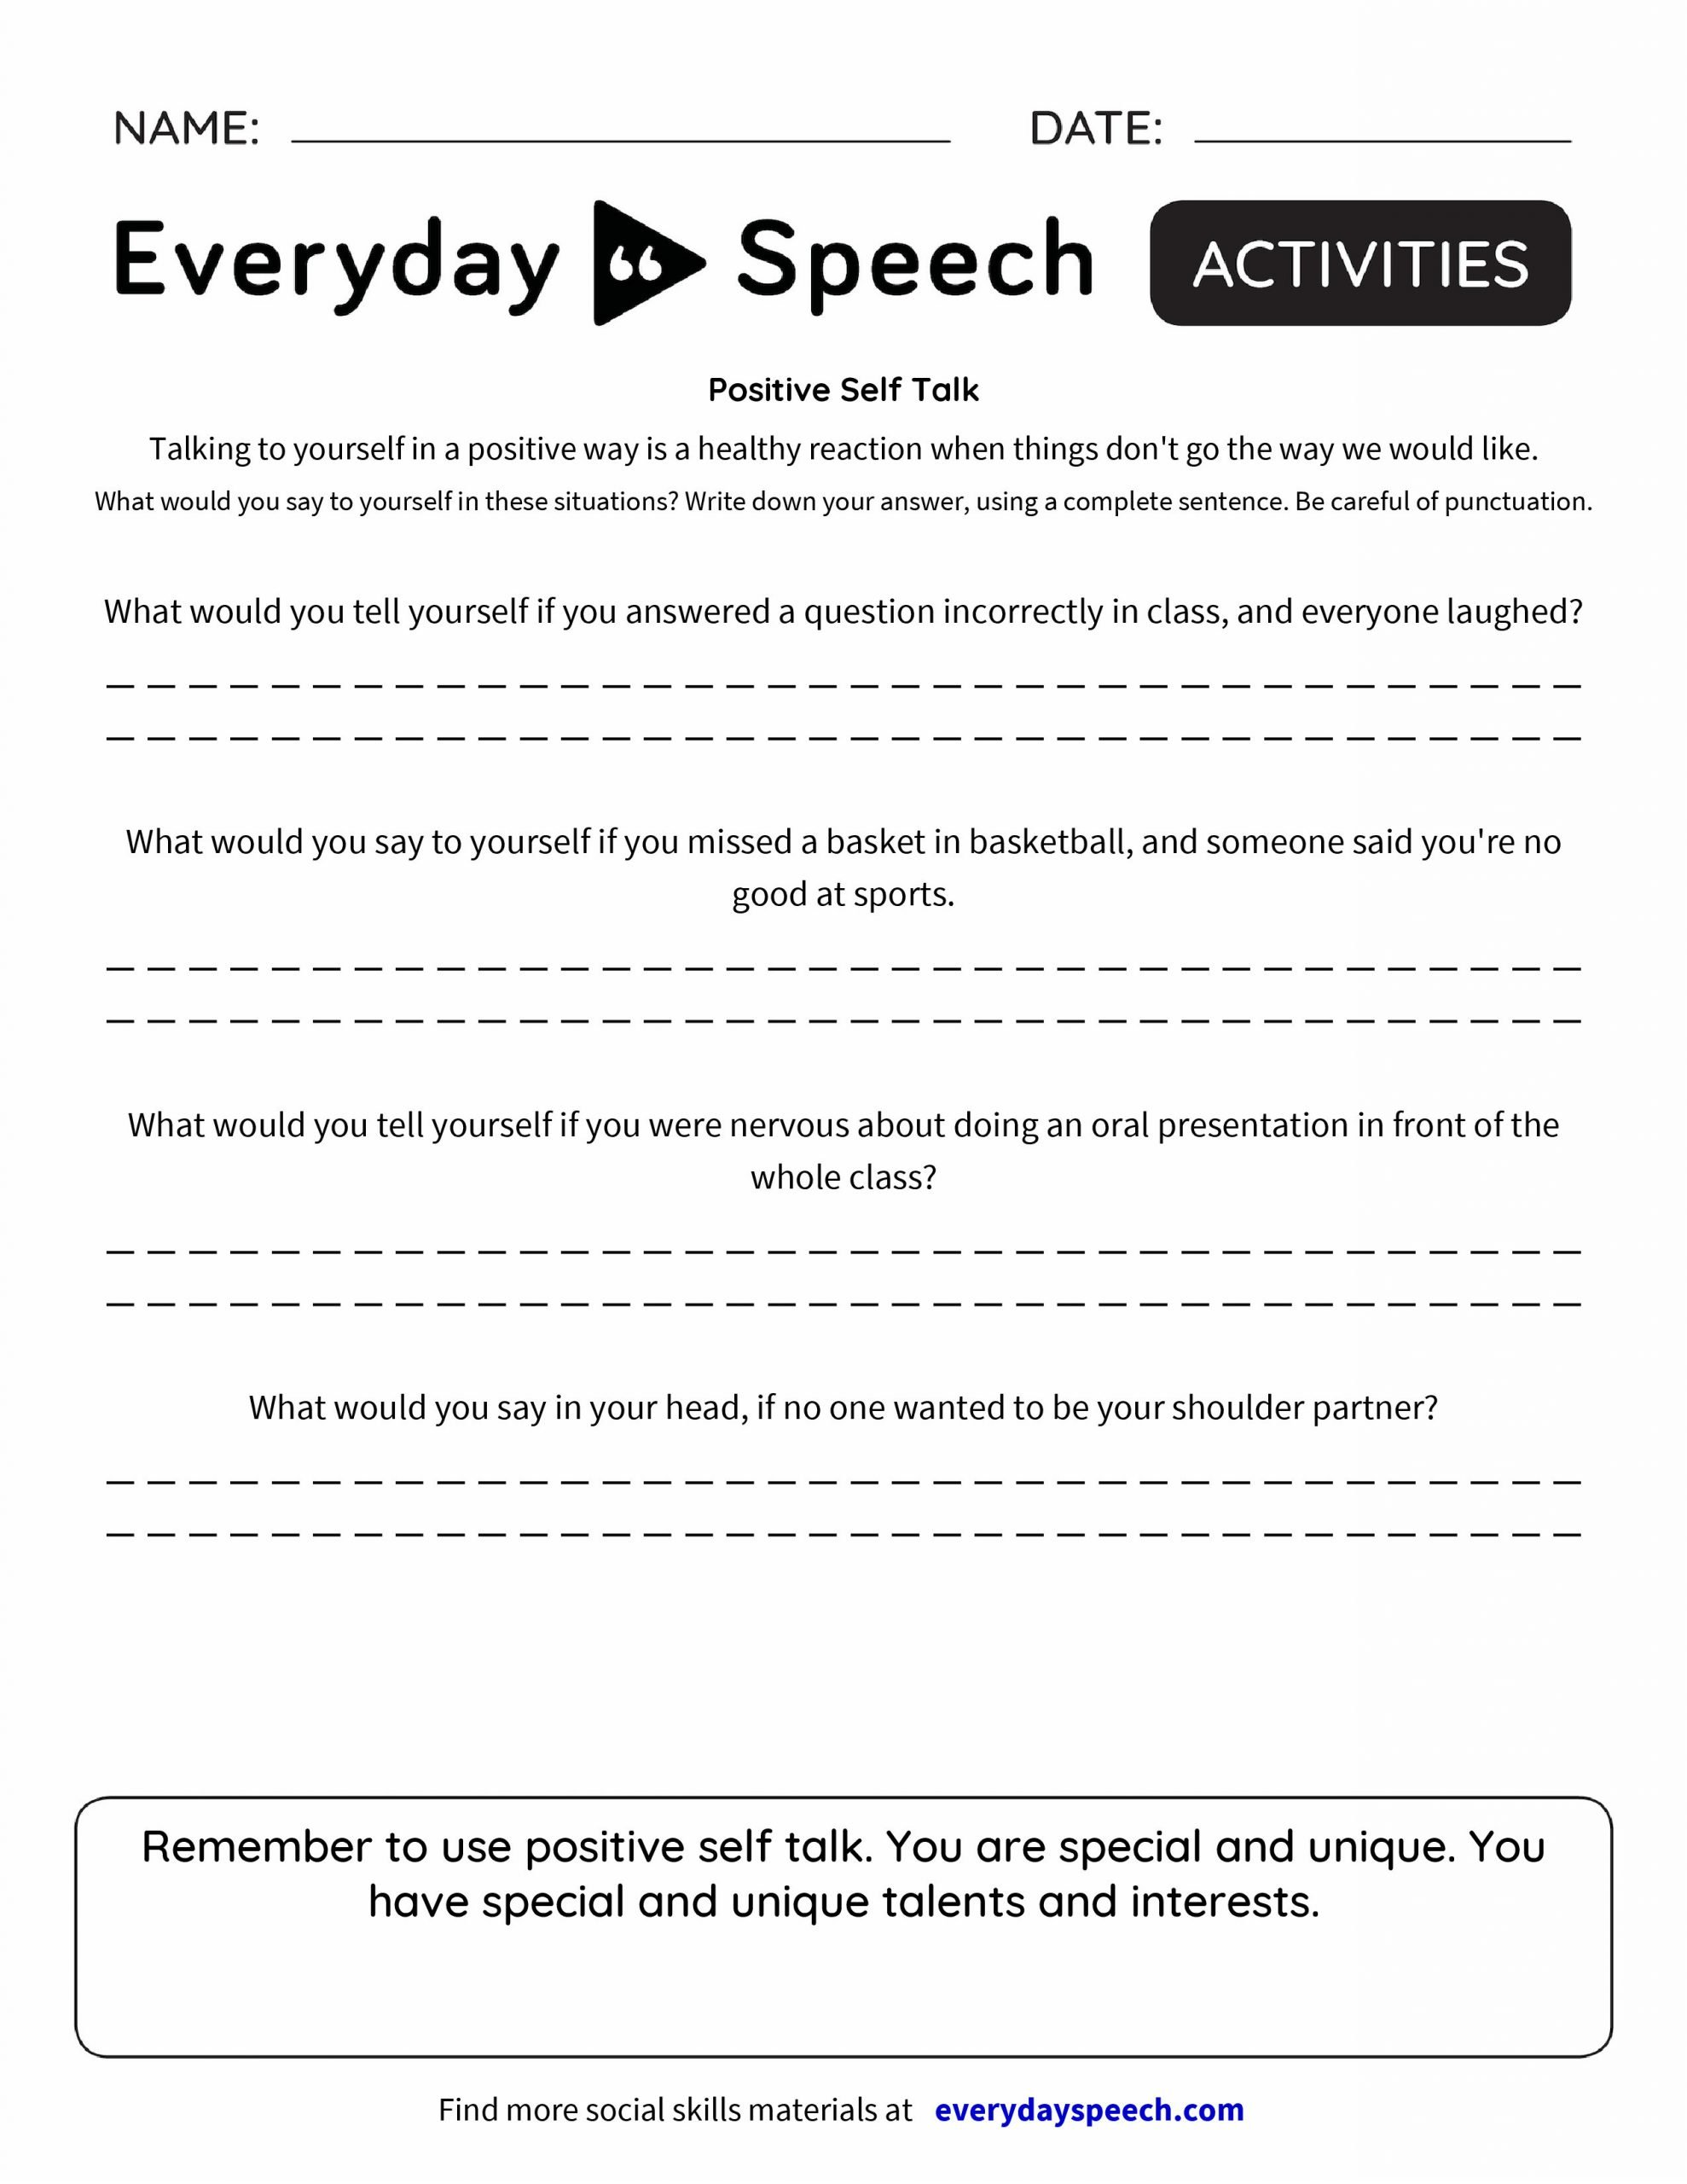 Social Skills Training Worksheets Adults Positive Self Talk Worksheet